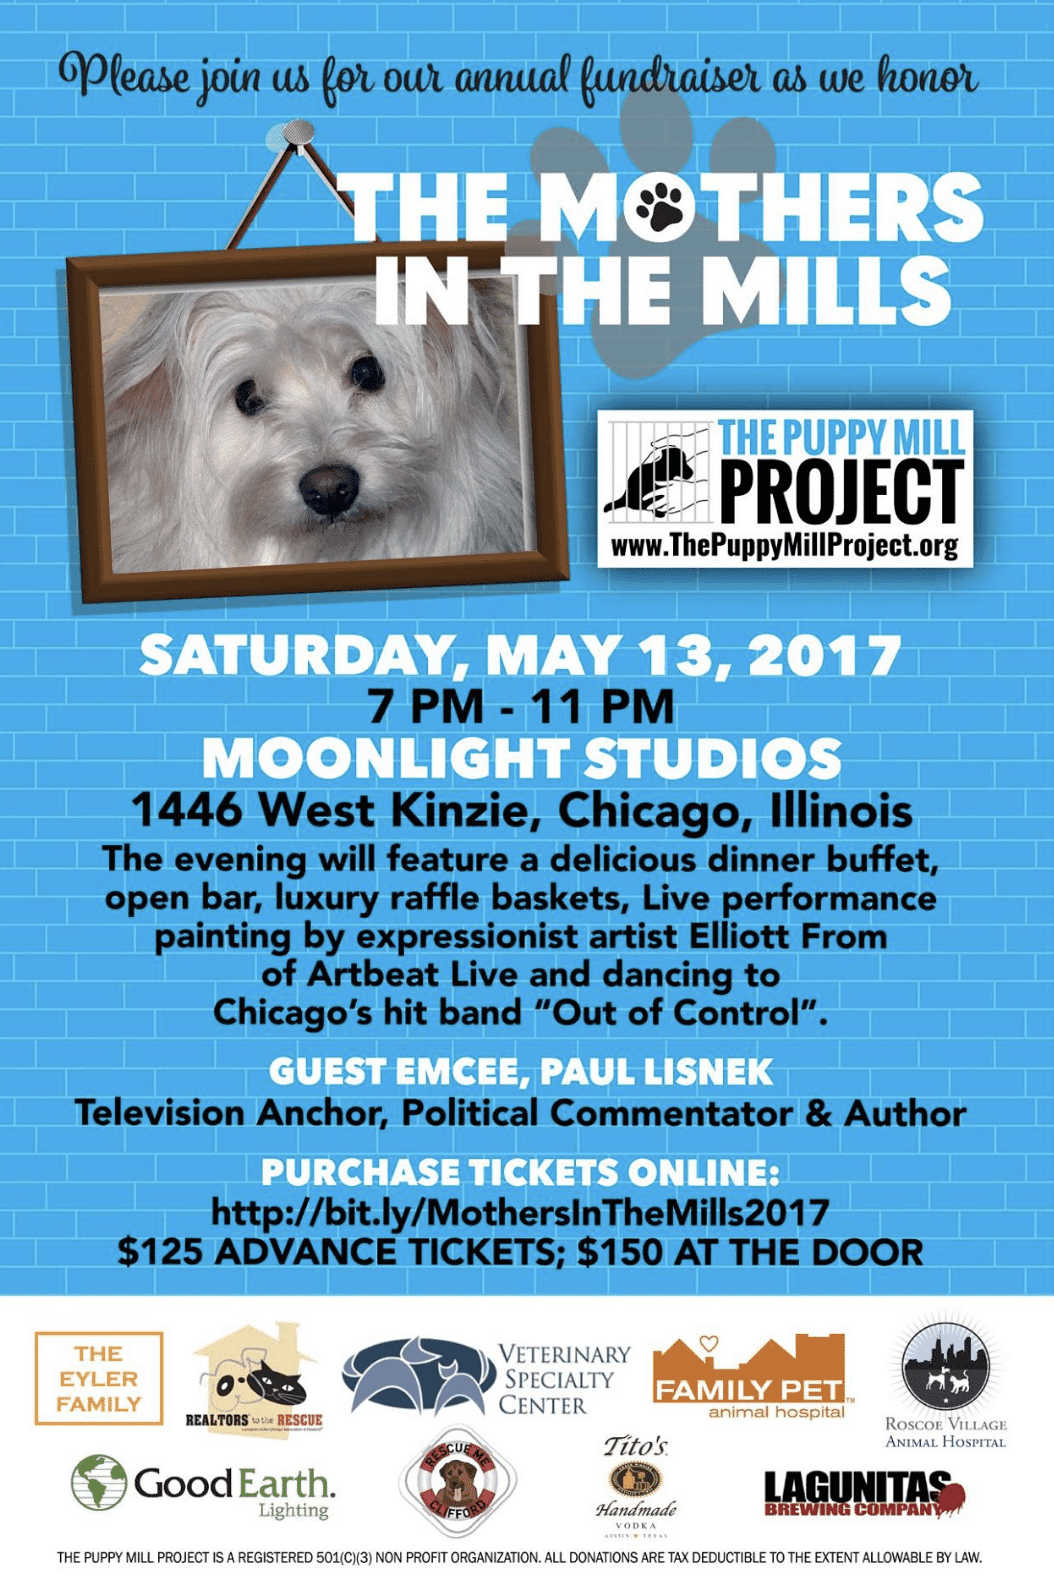 Pet expert Steve Dale on the upcoming Puppy Mill Project benefit